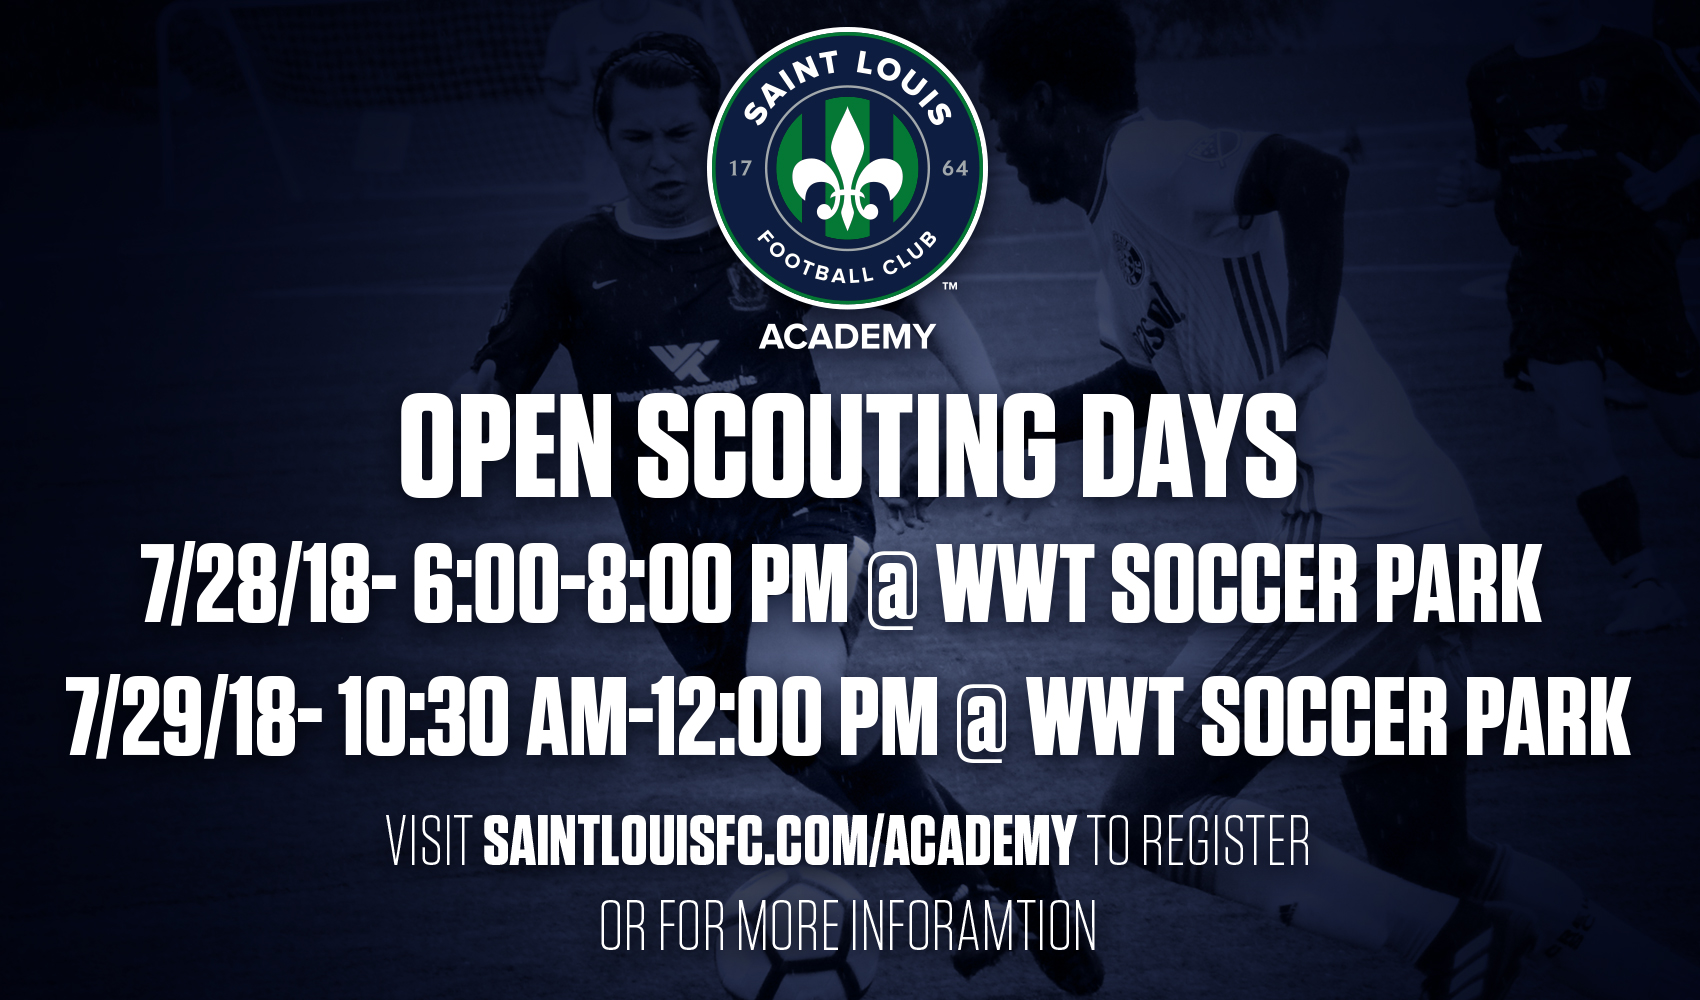 STLFC Academy Open Scouting Days